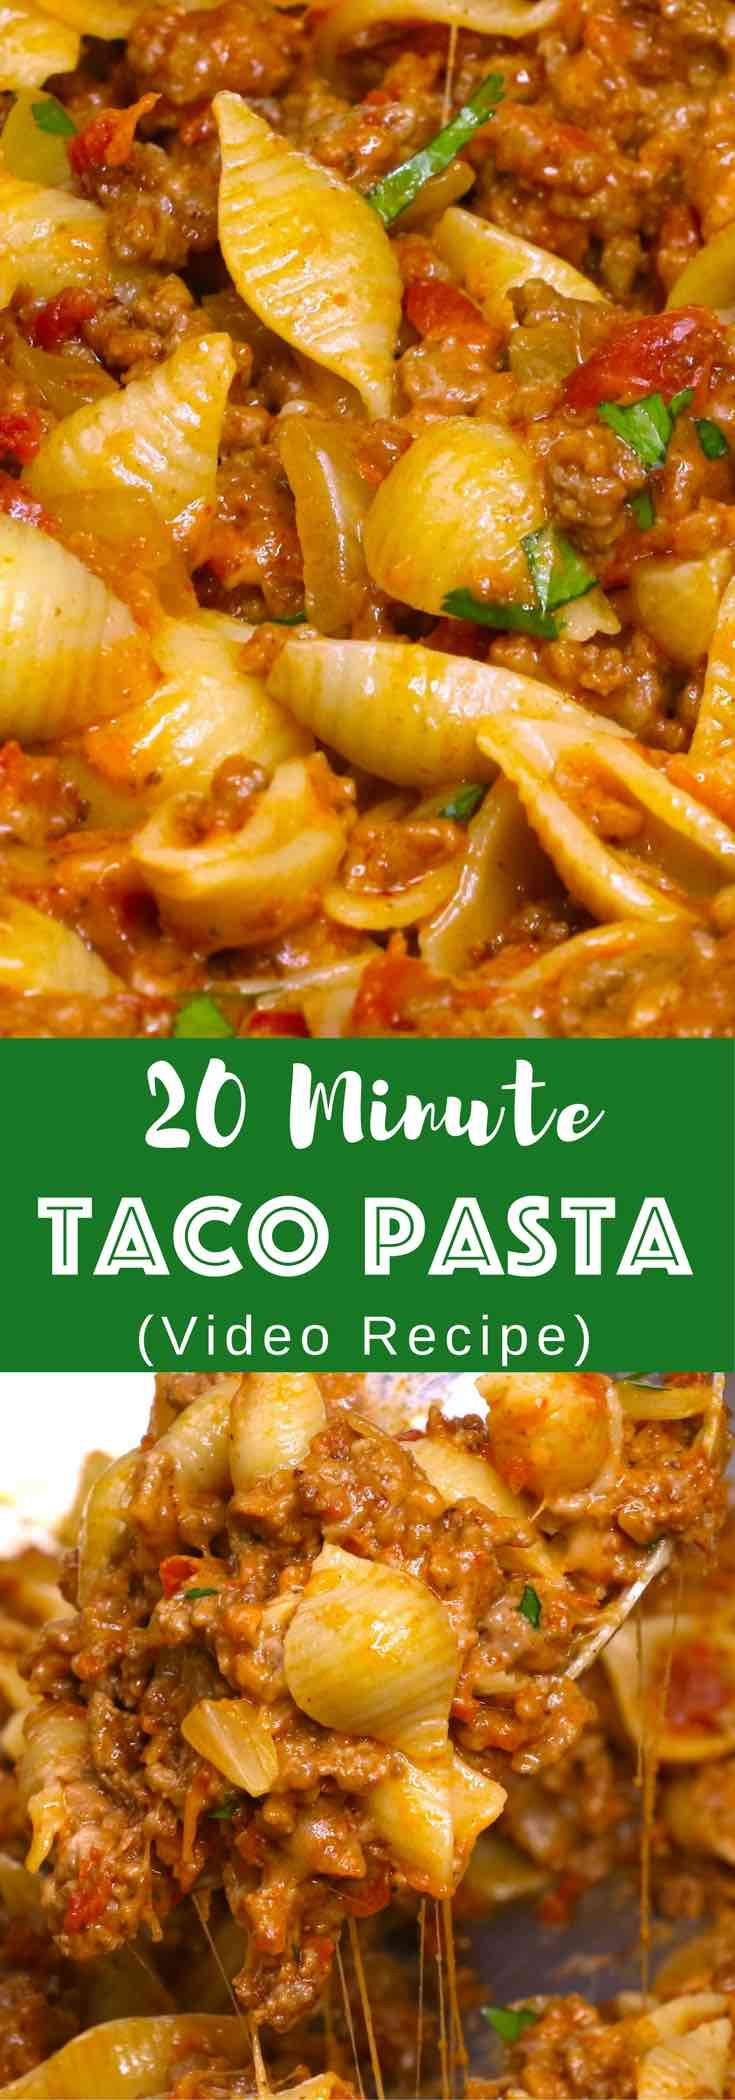 This One-pot Cheesy Taco Pasta is one of the easiest dinner recipes that everyone loves. See how to make it!